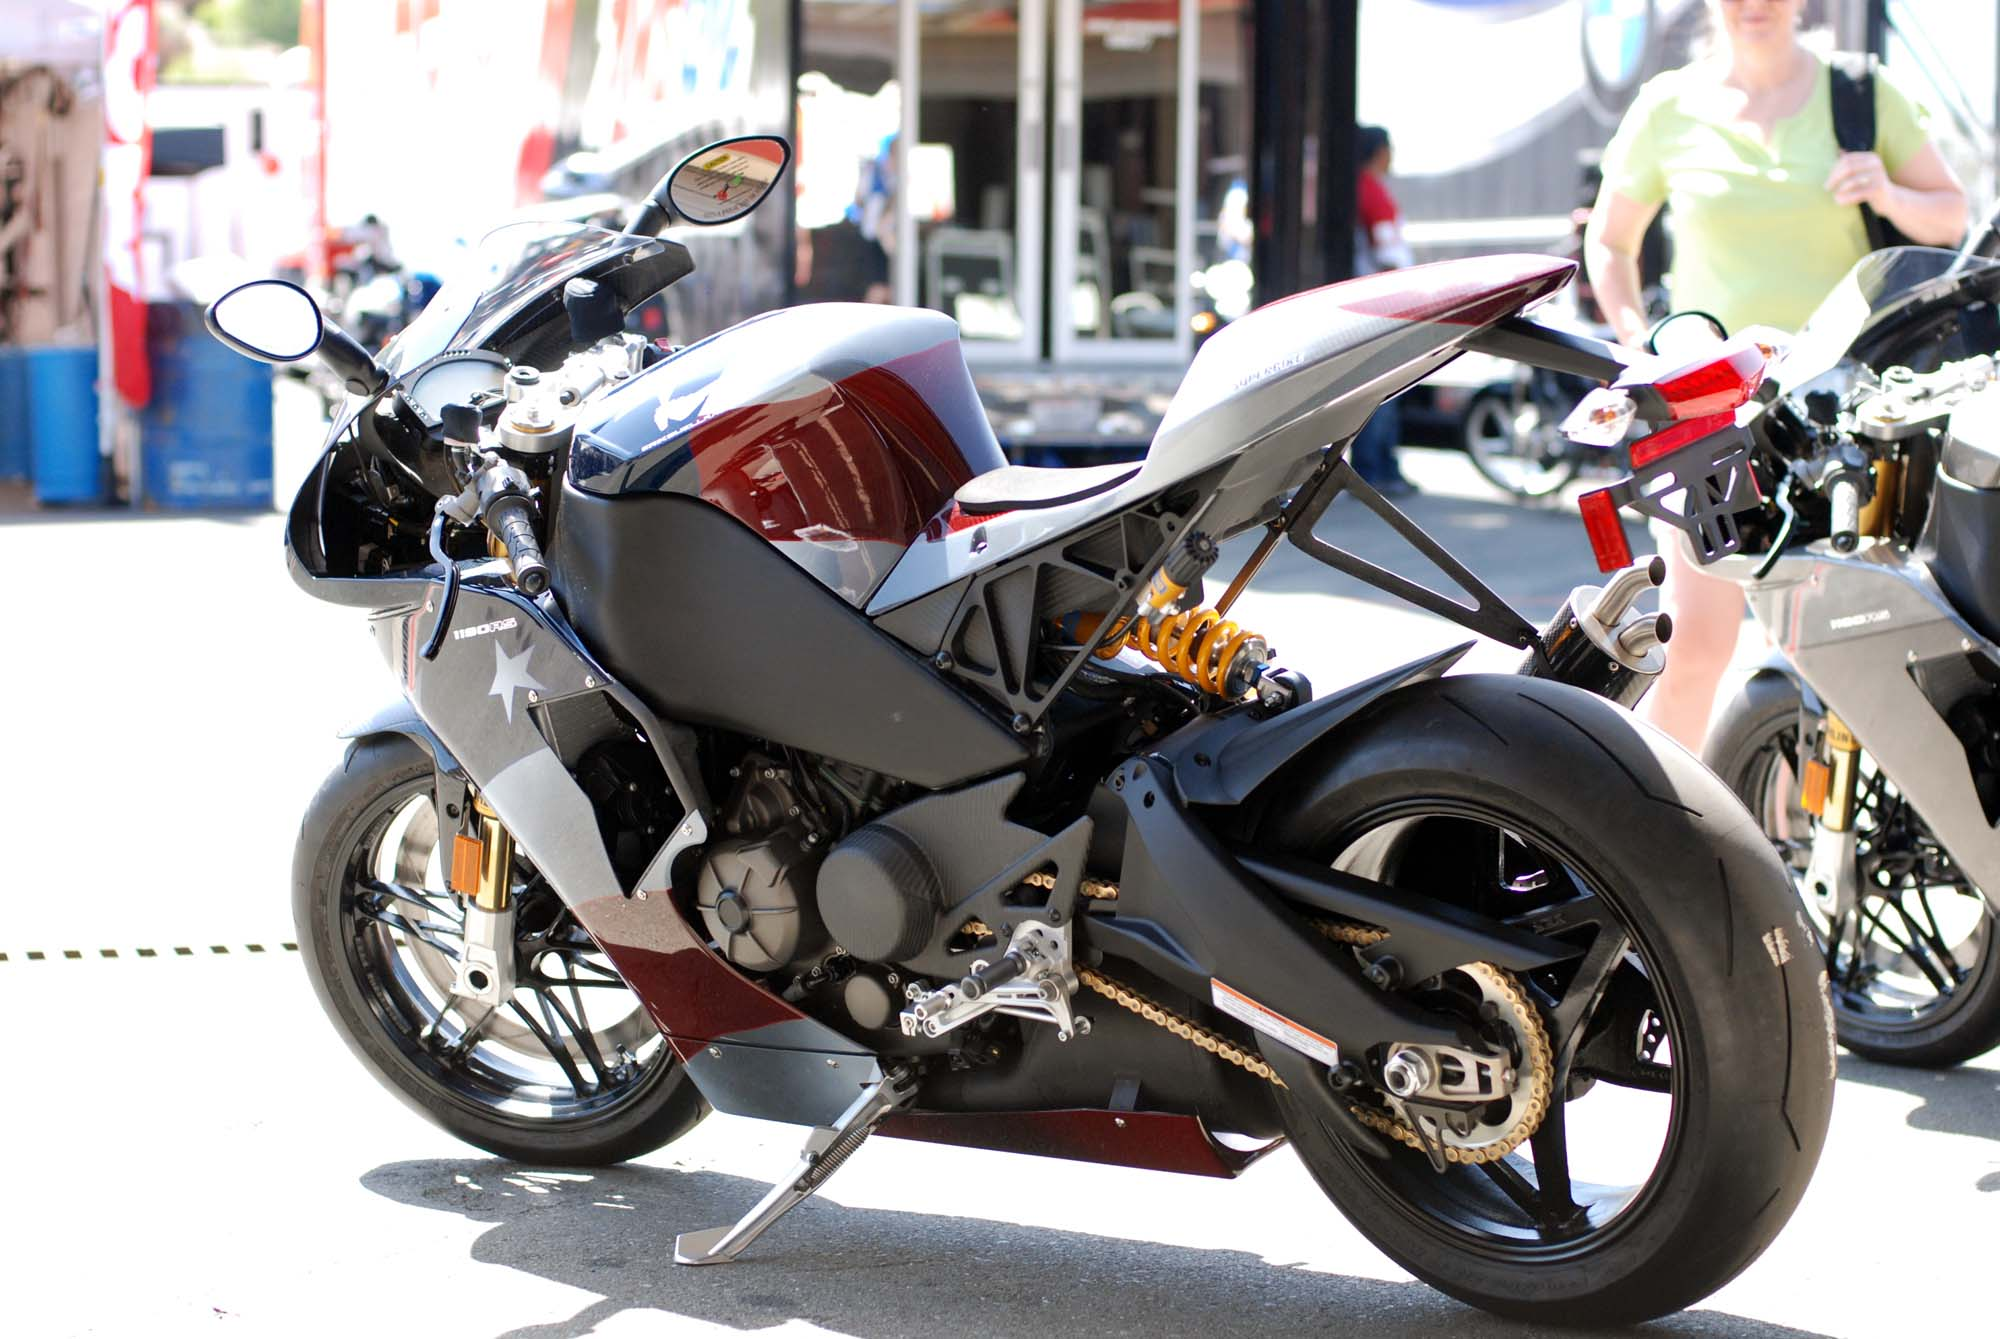 Up Close With The Erik Buell Racing 1190rs Merica Edition